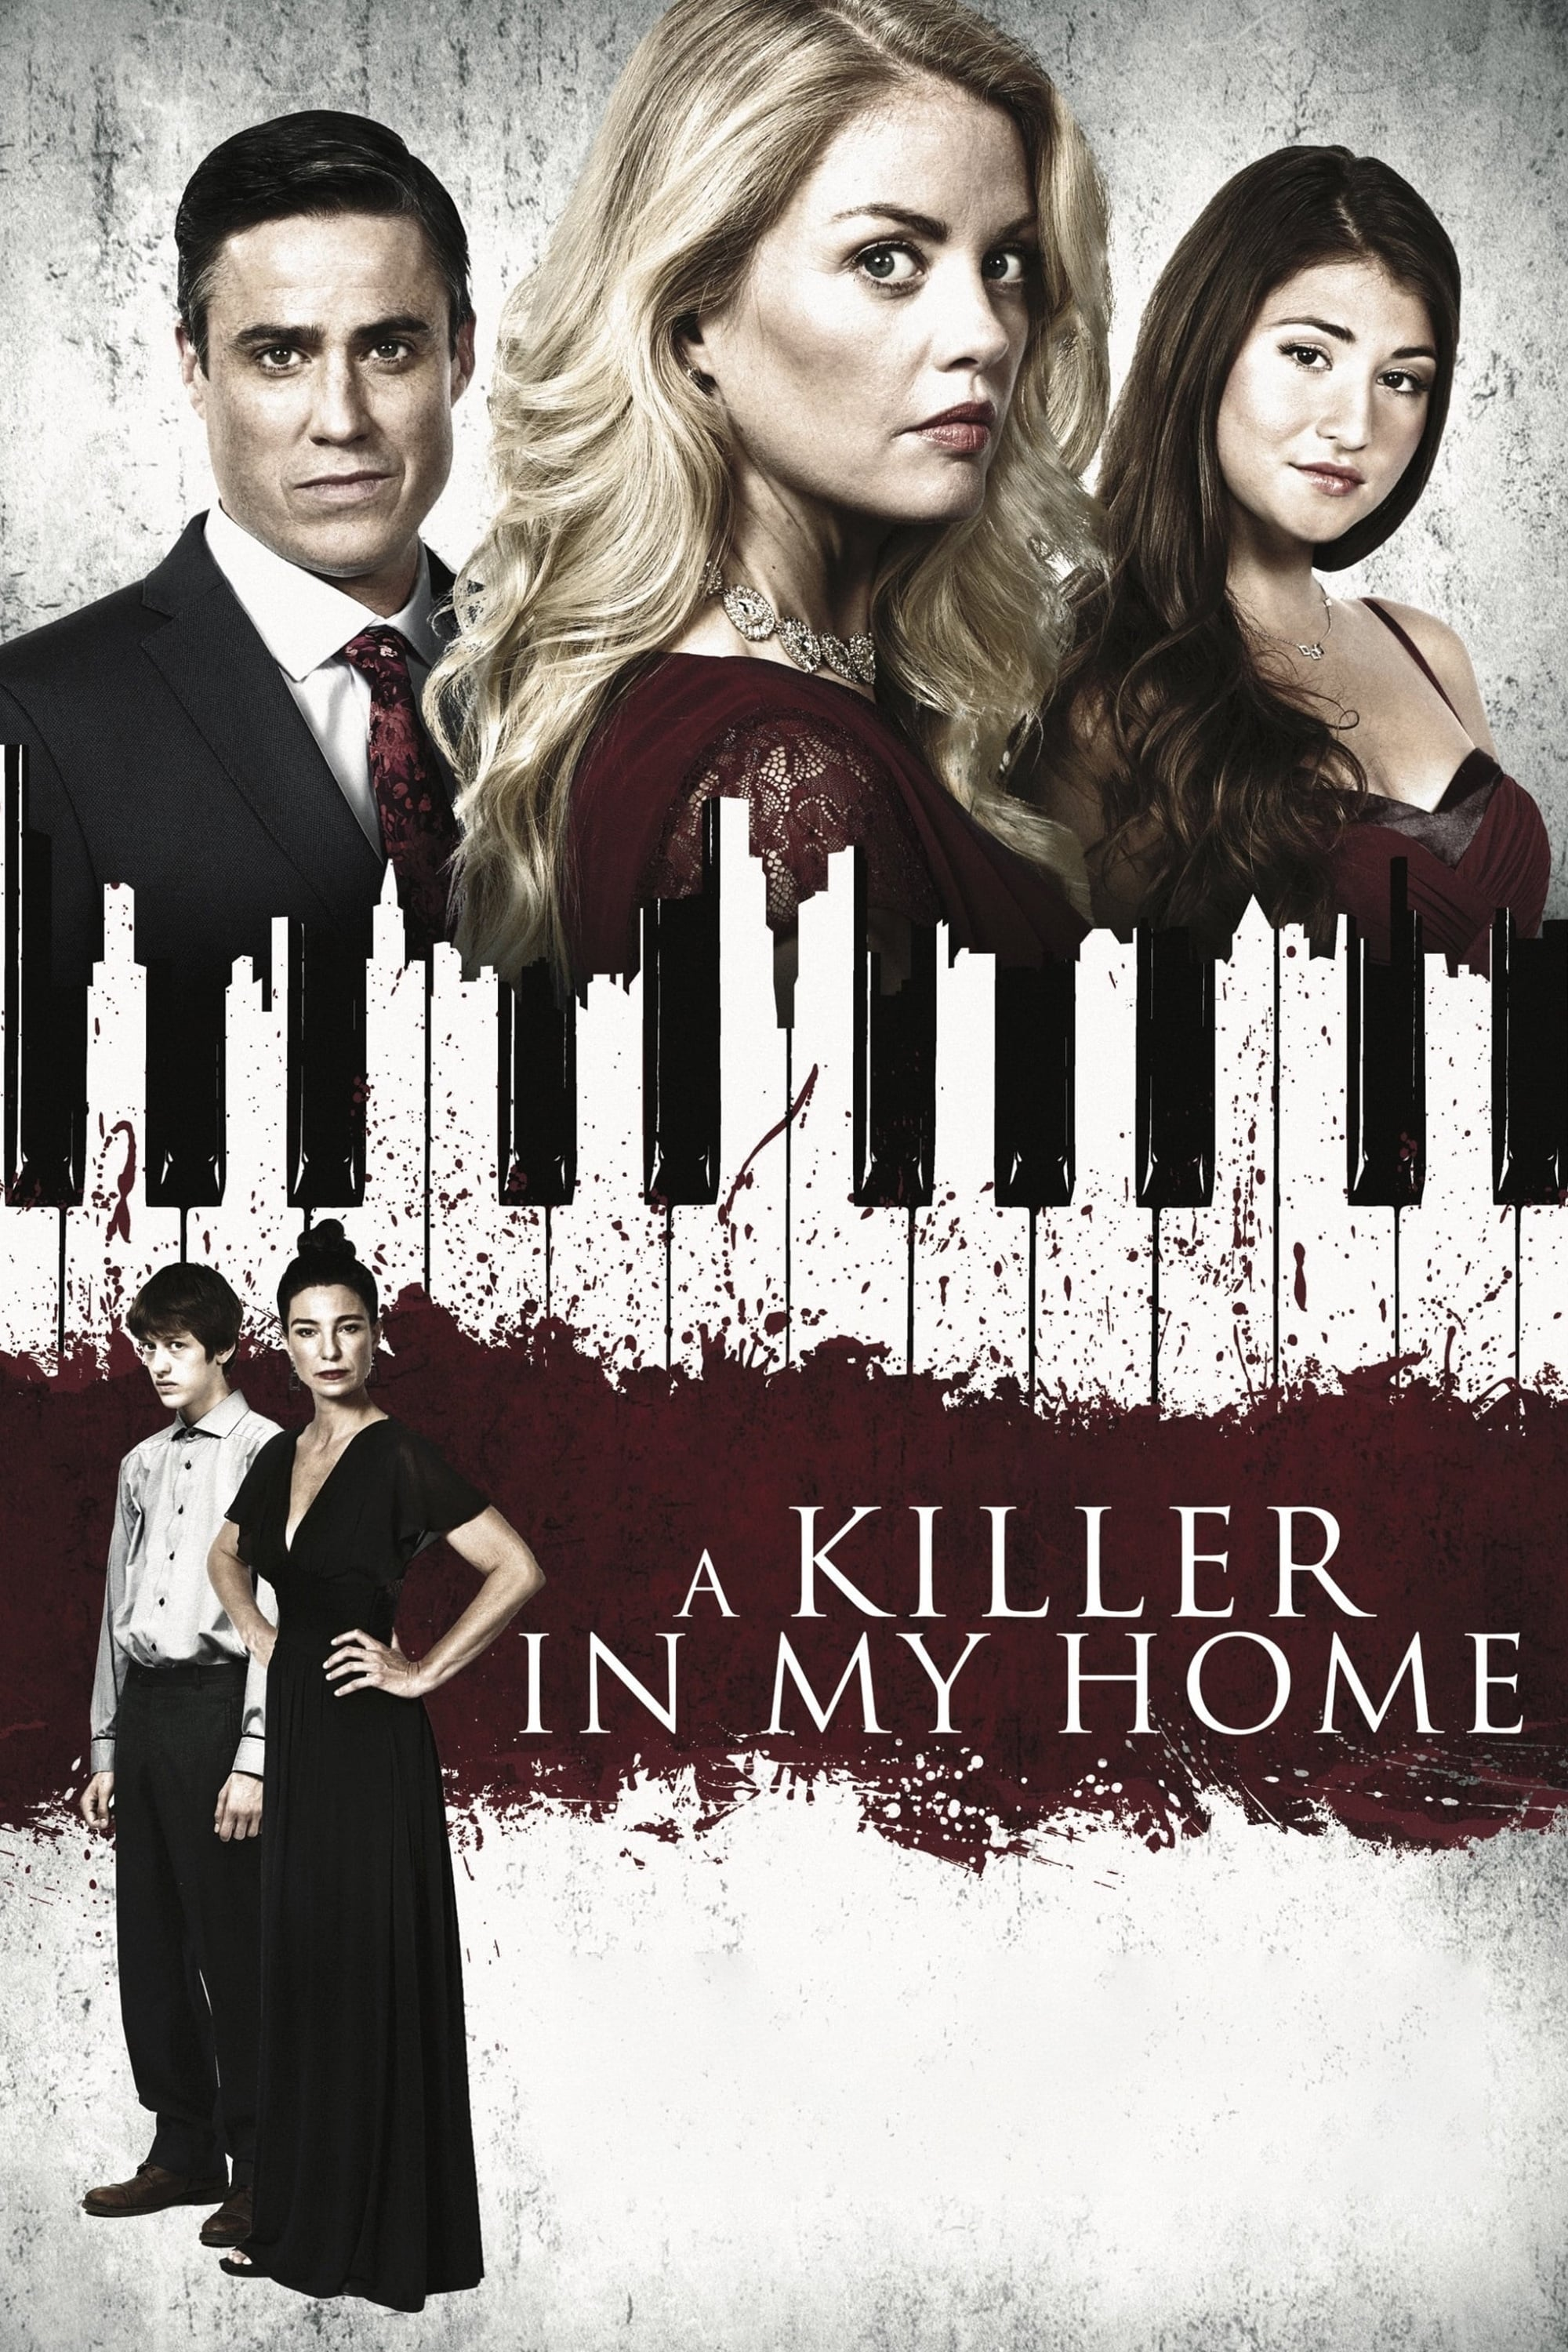 A Killer In My Home - A Family's Nightmare - 2020